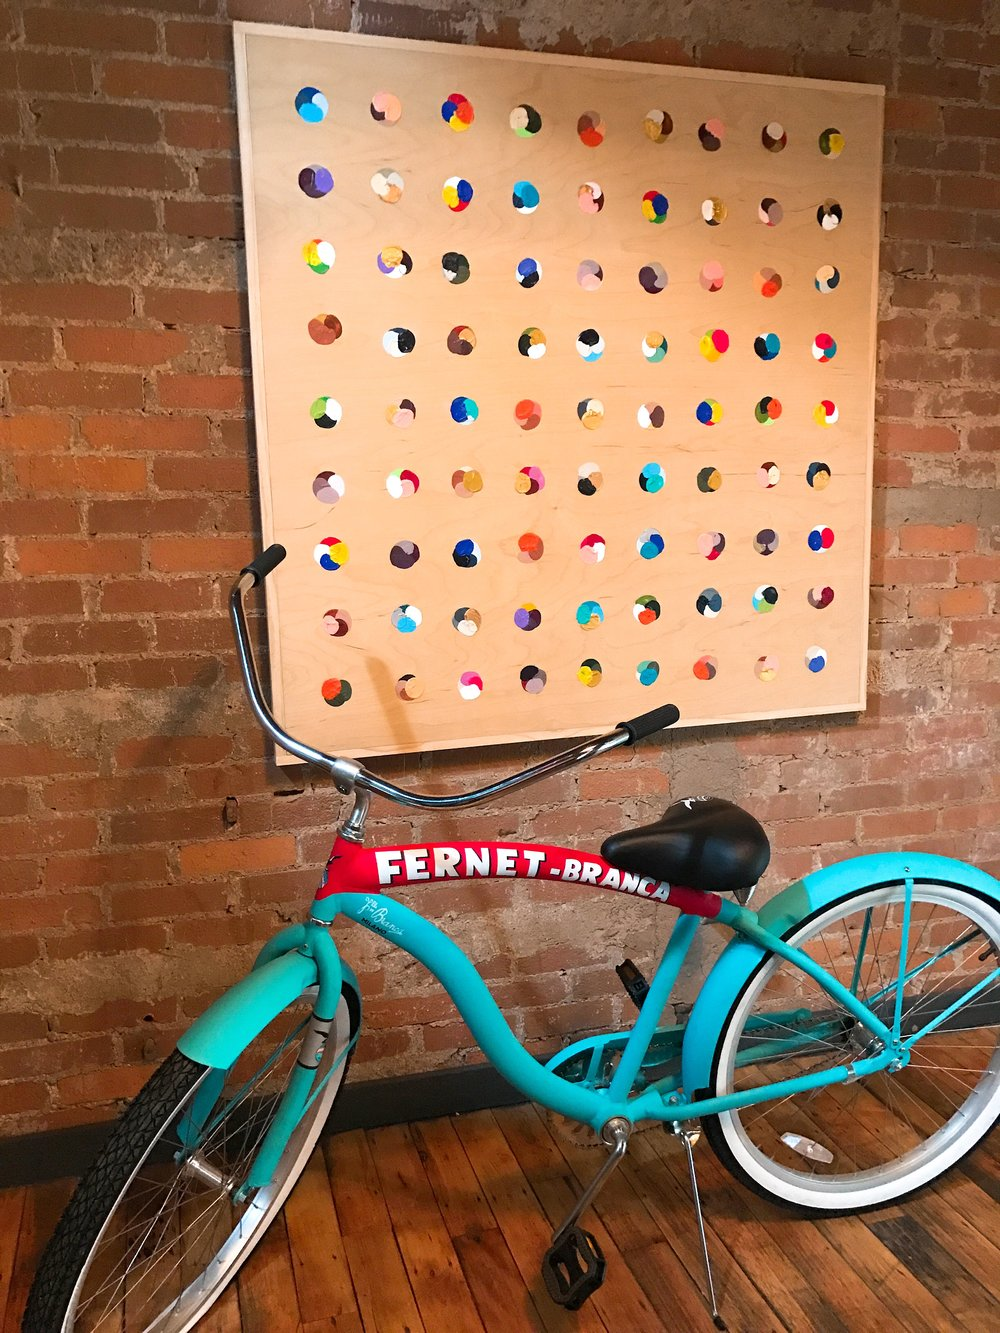 I can't even... How adorable is this bicycle?!?  Fernet, please!